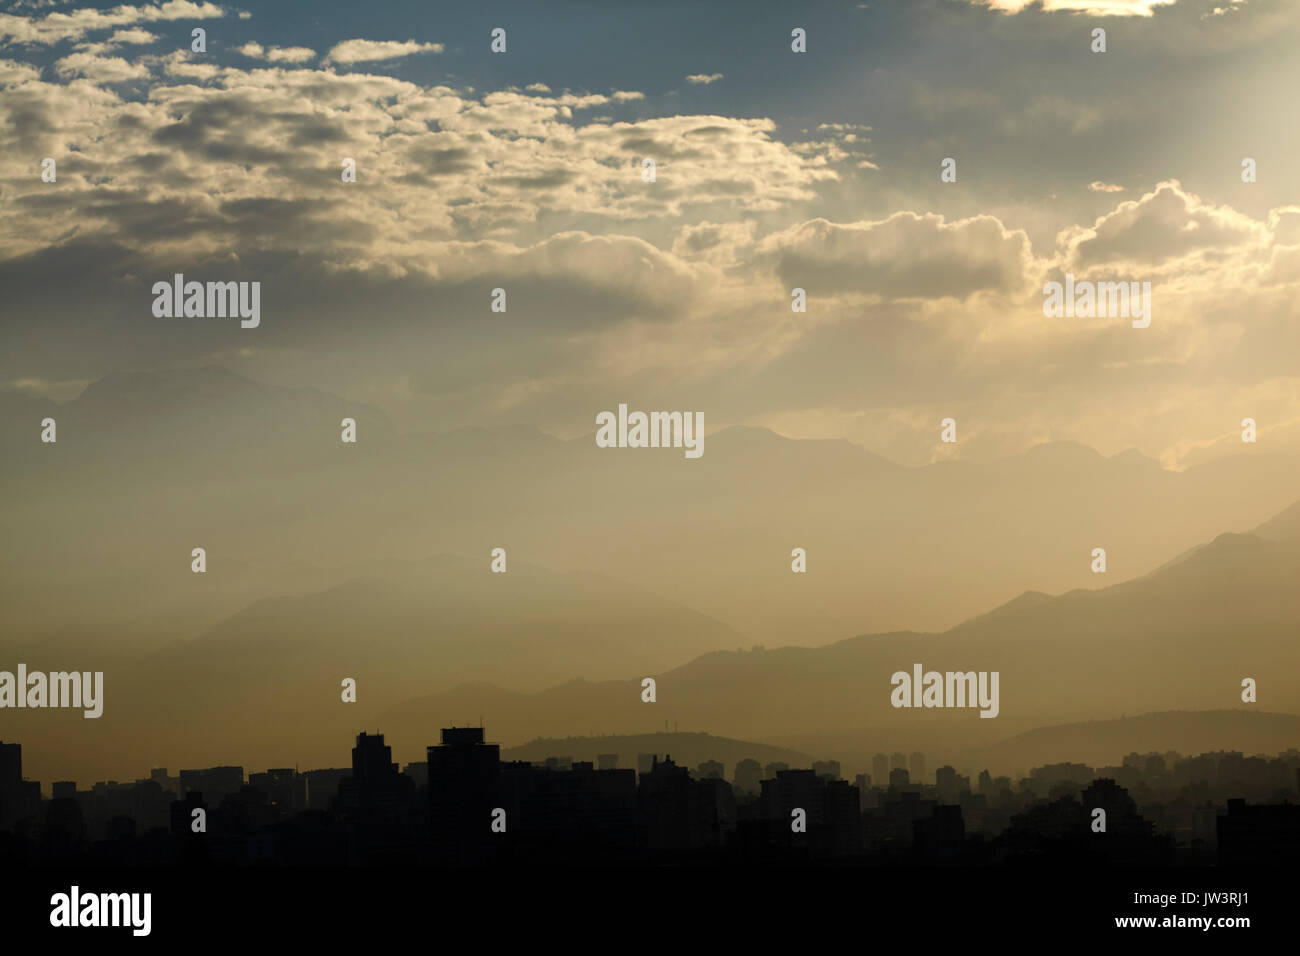 Santiago and the Andes Mountains, Chile, South America - Stock Image